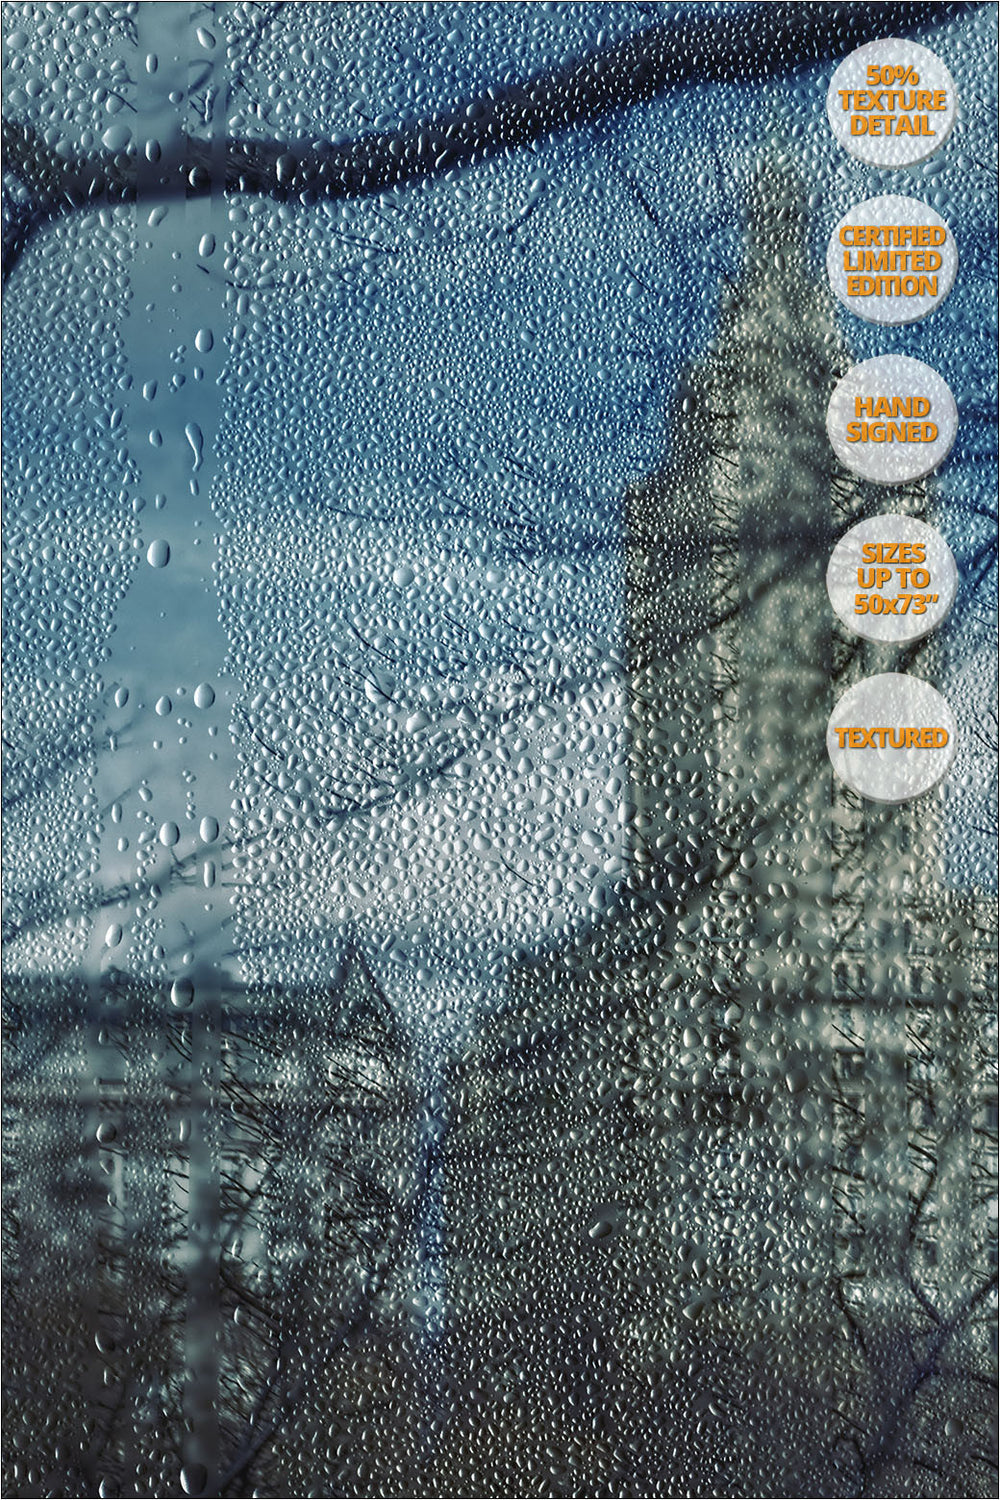 The San Remo from Central Park in Winter, New York. | 50% Magnification Detail.